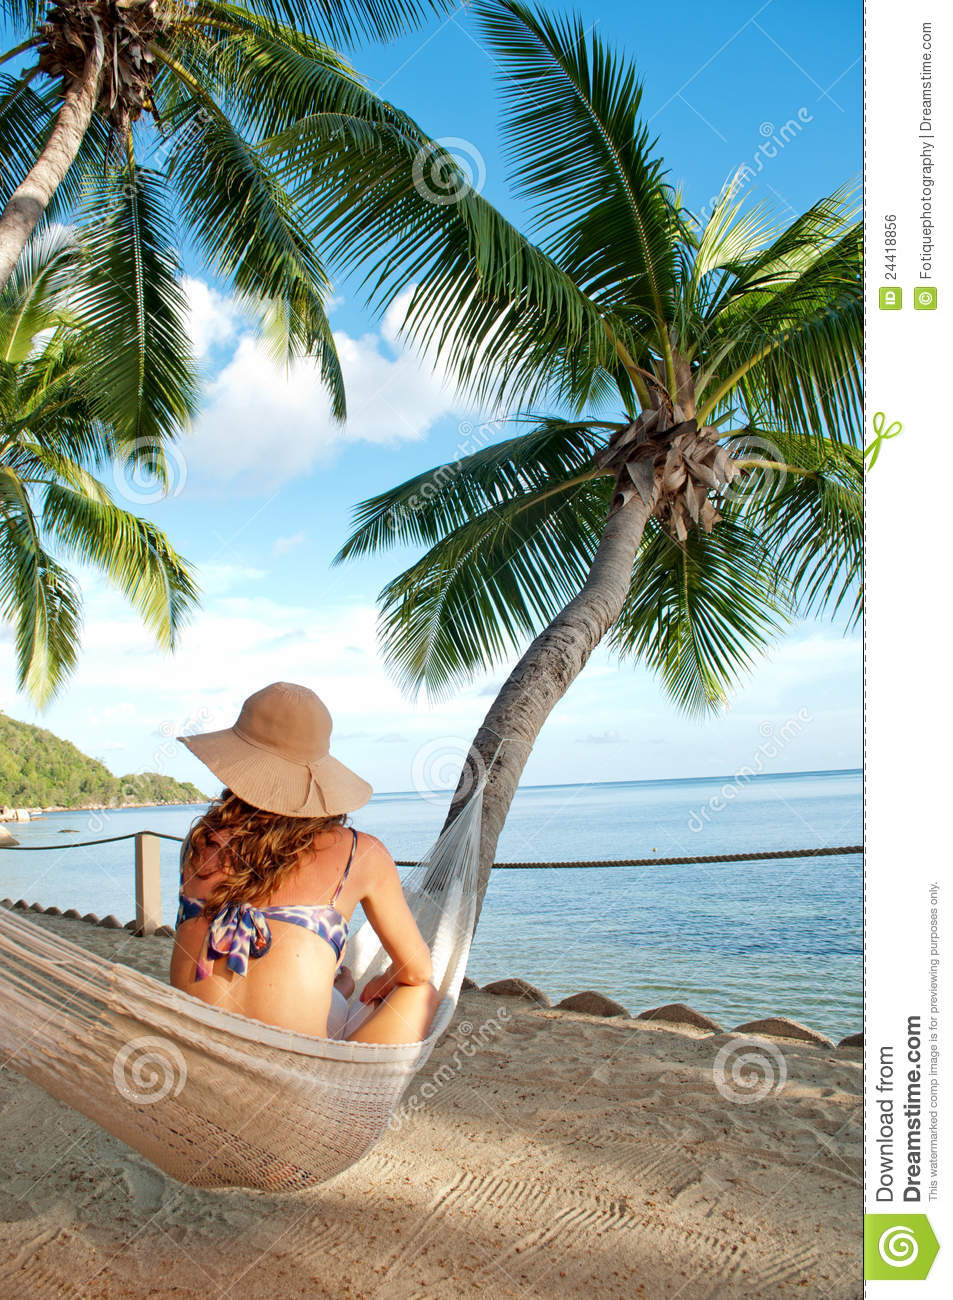 Woman On Hammock In Tropical Island Palm Trees Stock Photo